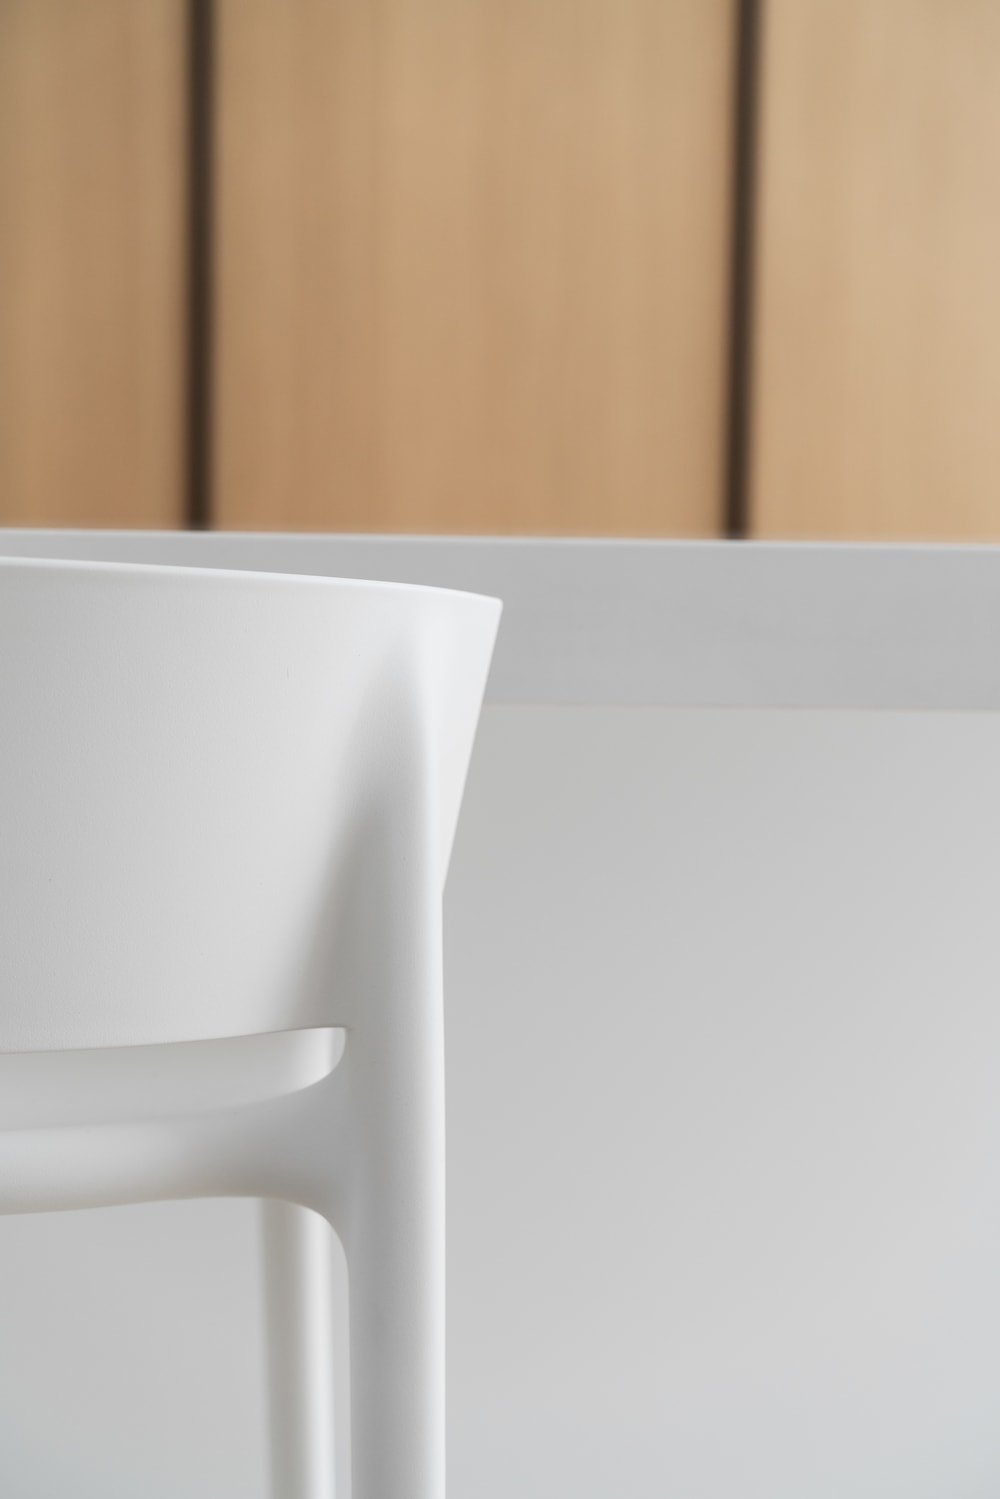 This is a close look at one of the modern white stools of the kitchen that totally blends in with the breakfast bar.